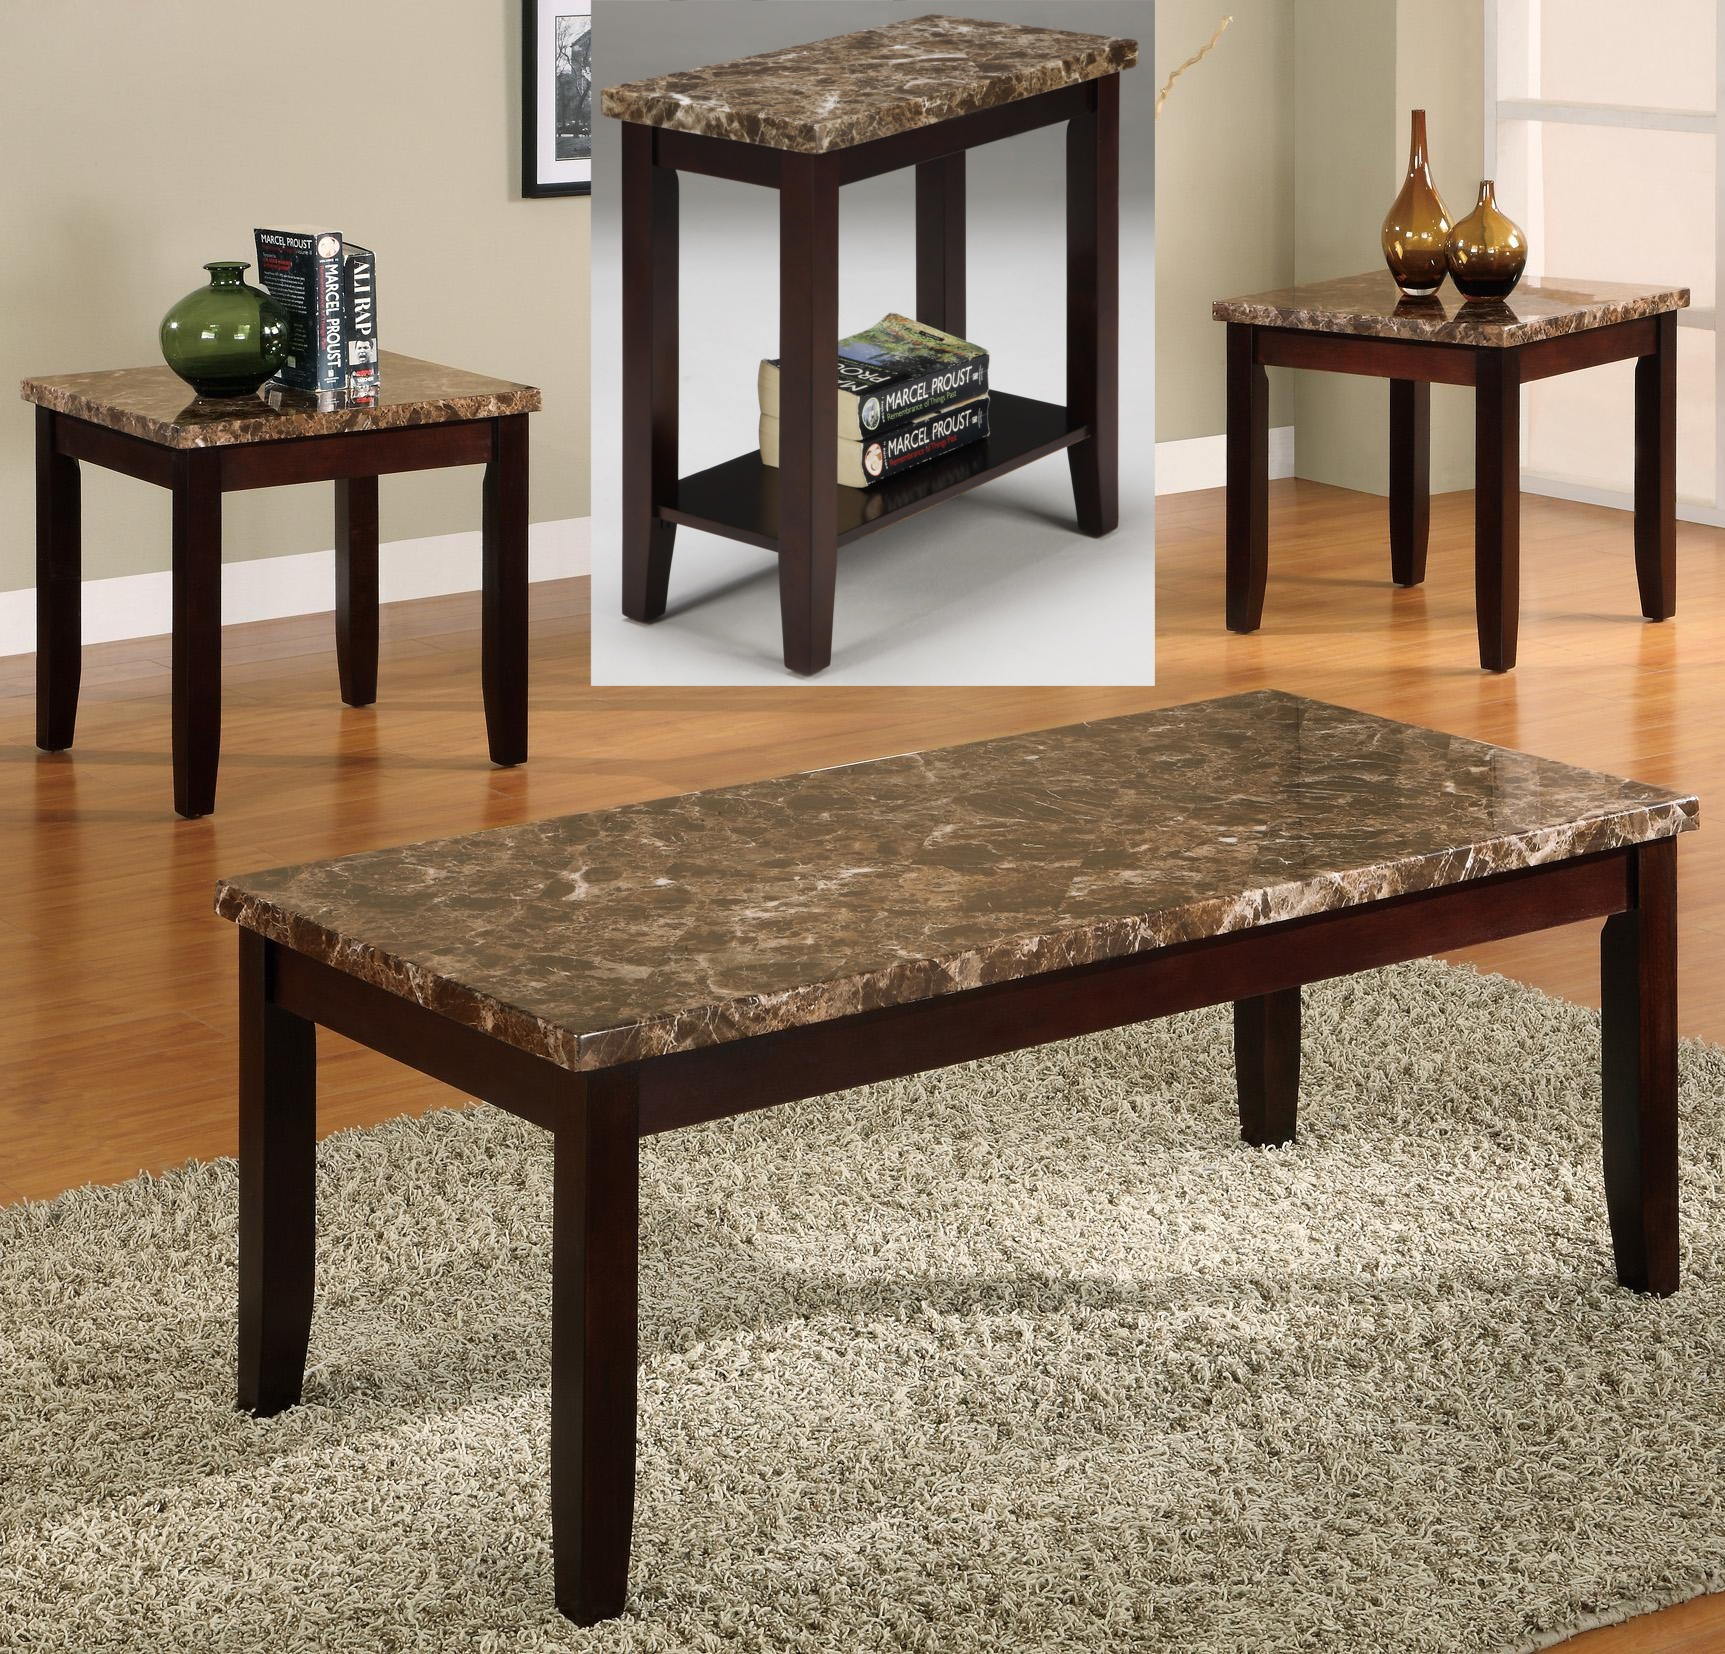 End Tables Clearance: Furniture Clearance Center